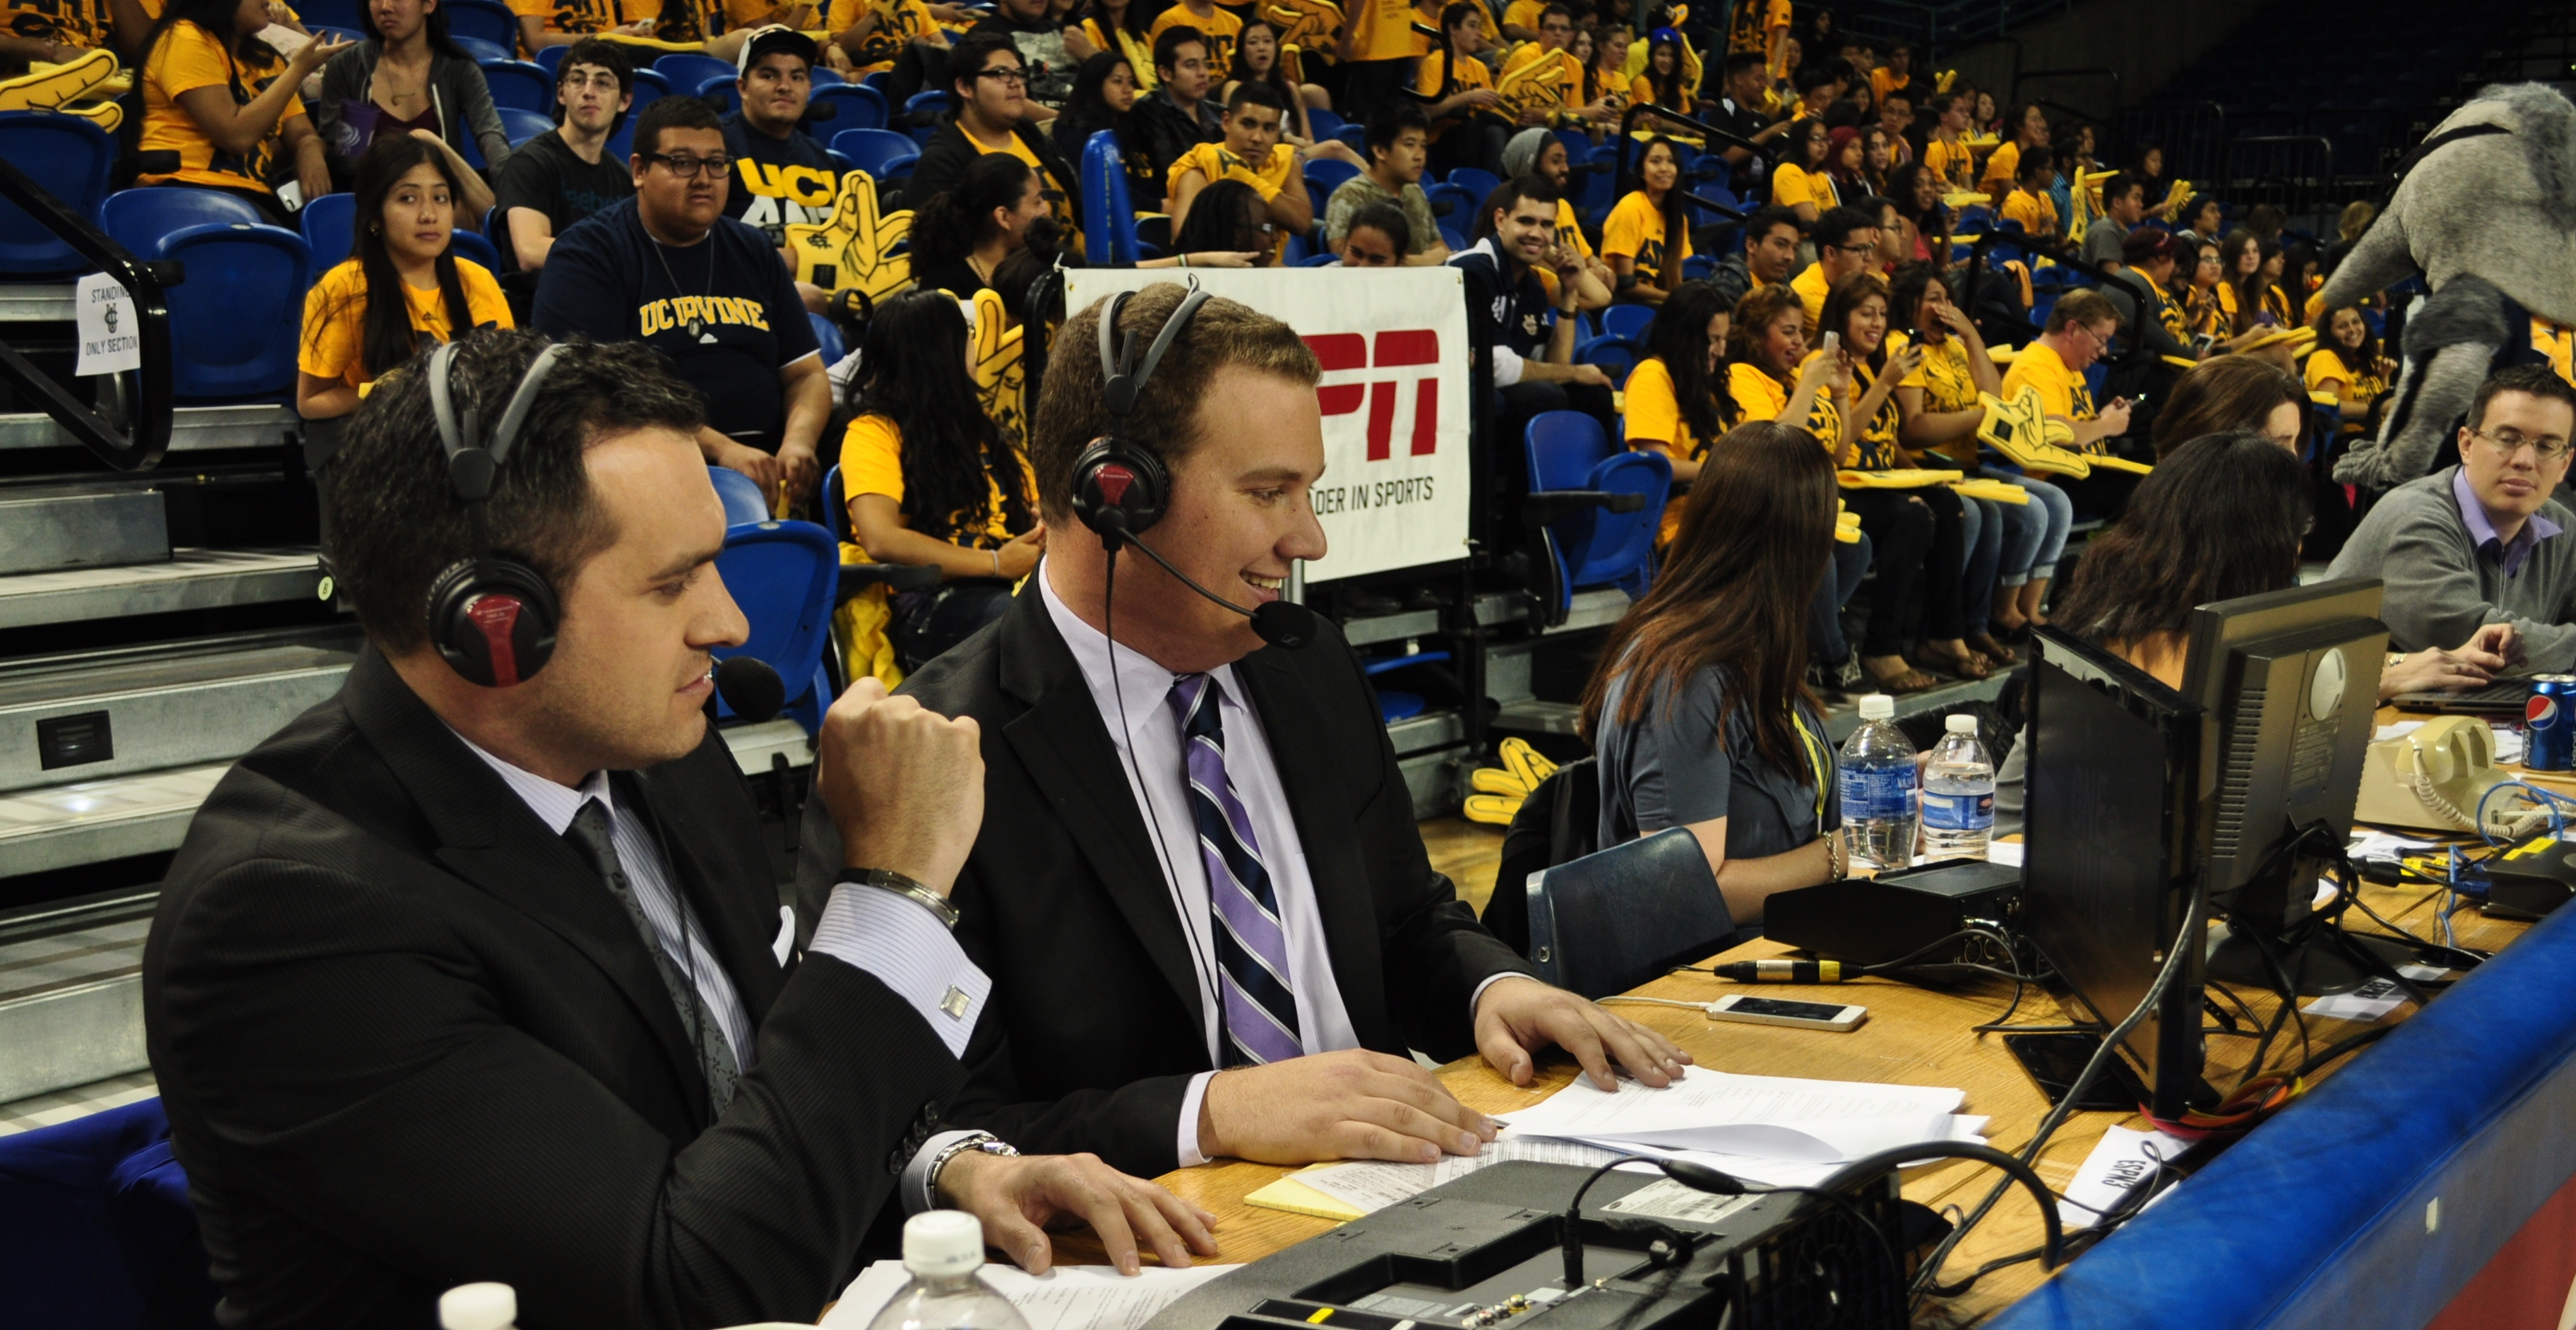 announcers at sporting event